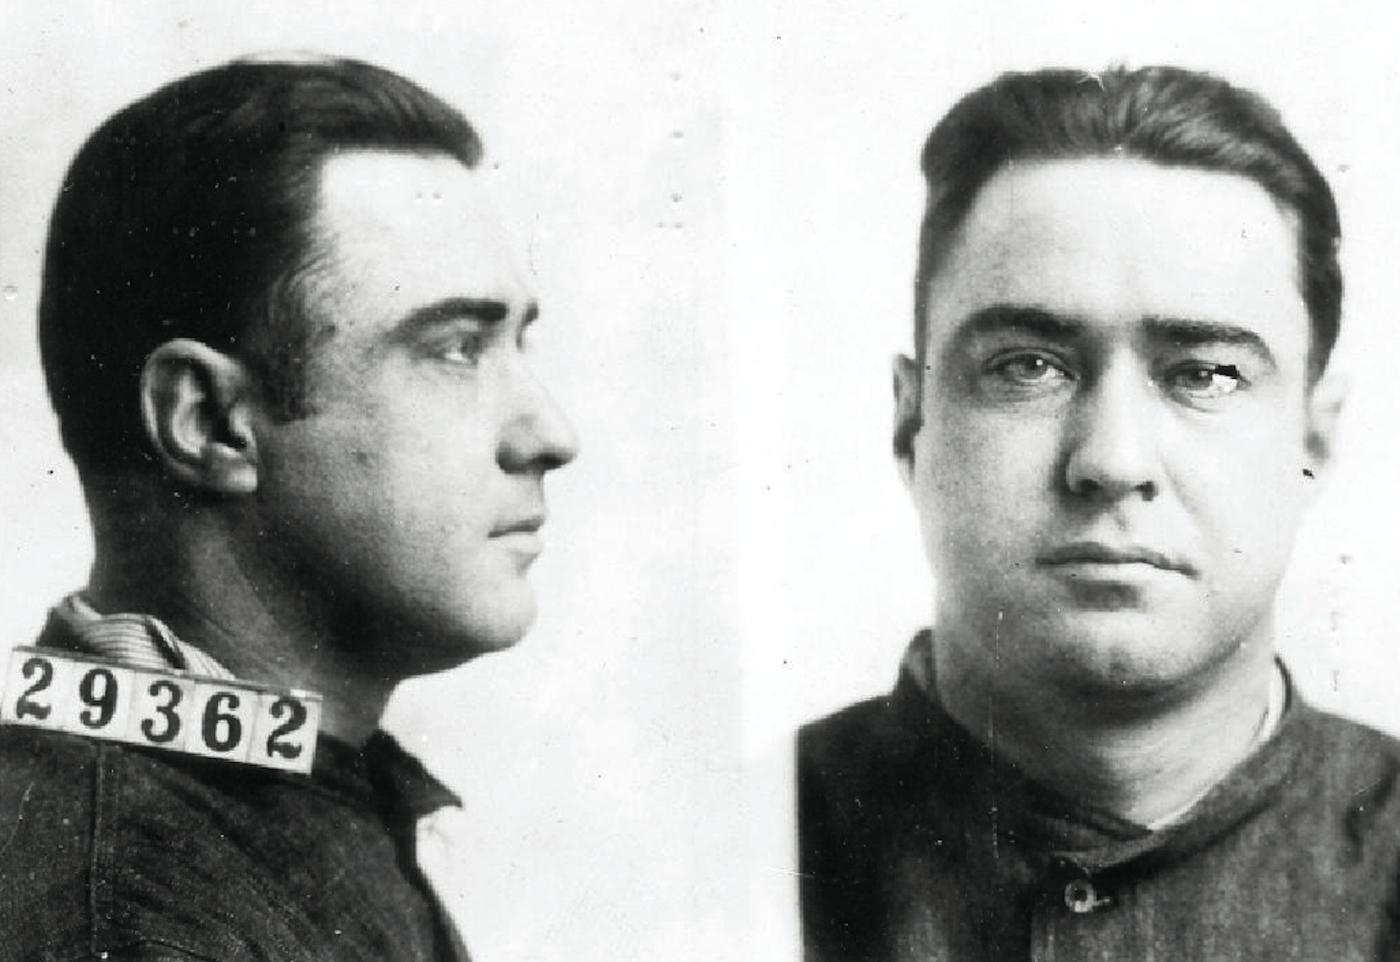 "Mug shots of George ""Machine Gun"" Kelly (real name George Barnes), gangster and kidnapper who reputedly said ""Don't shoot, G-men"" when arrested in Memphis in 1933. George Kelly and his gang kidnapped a wealthy oil magnate in 1933."